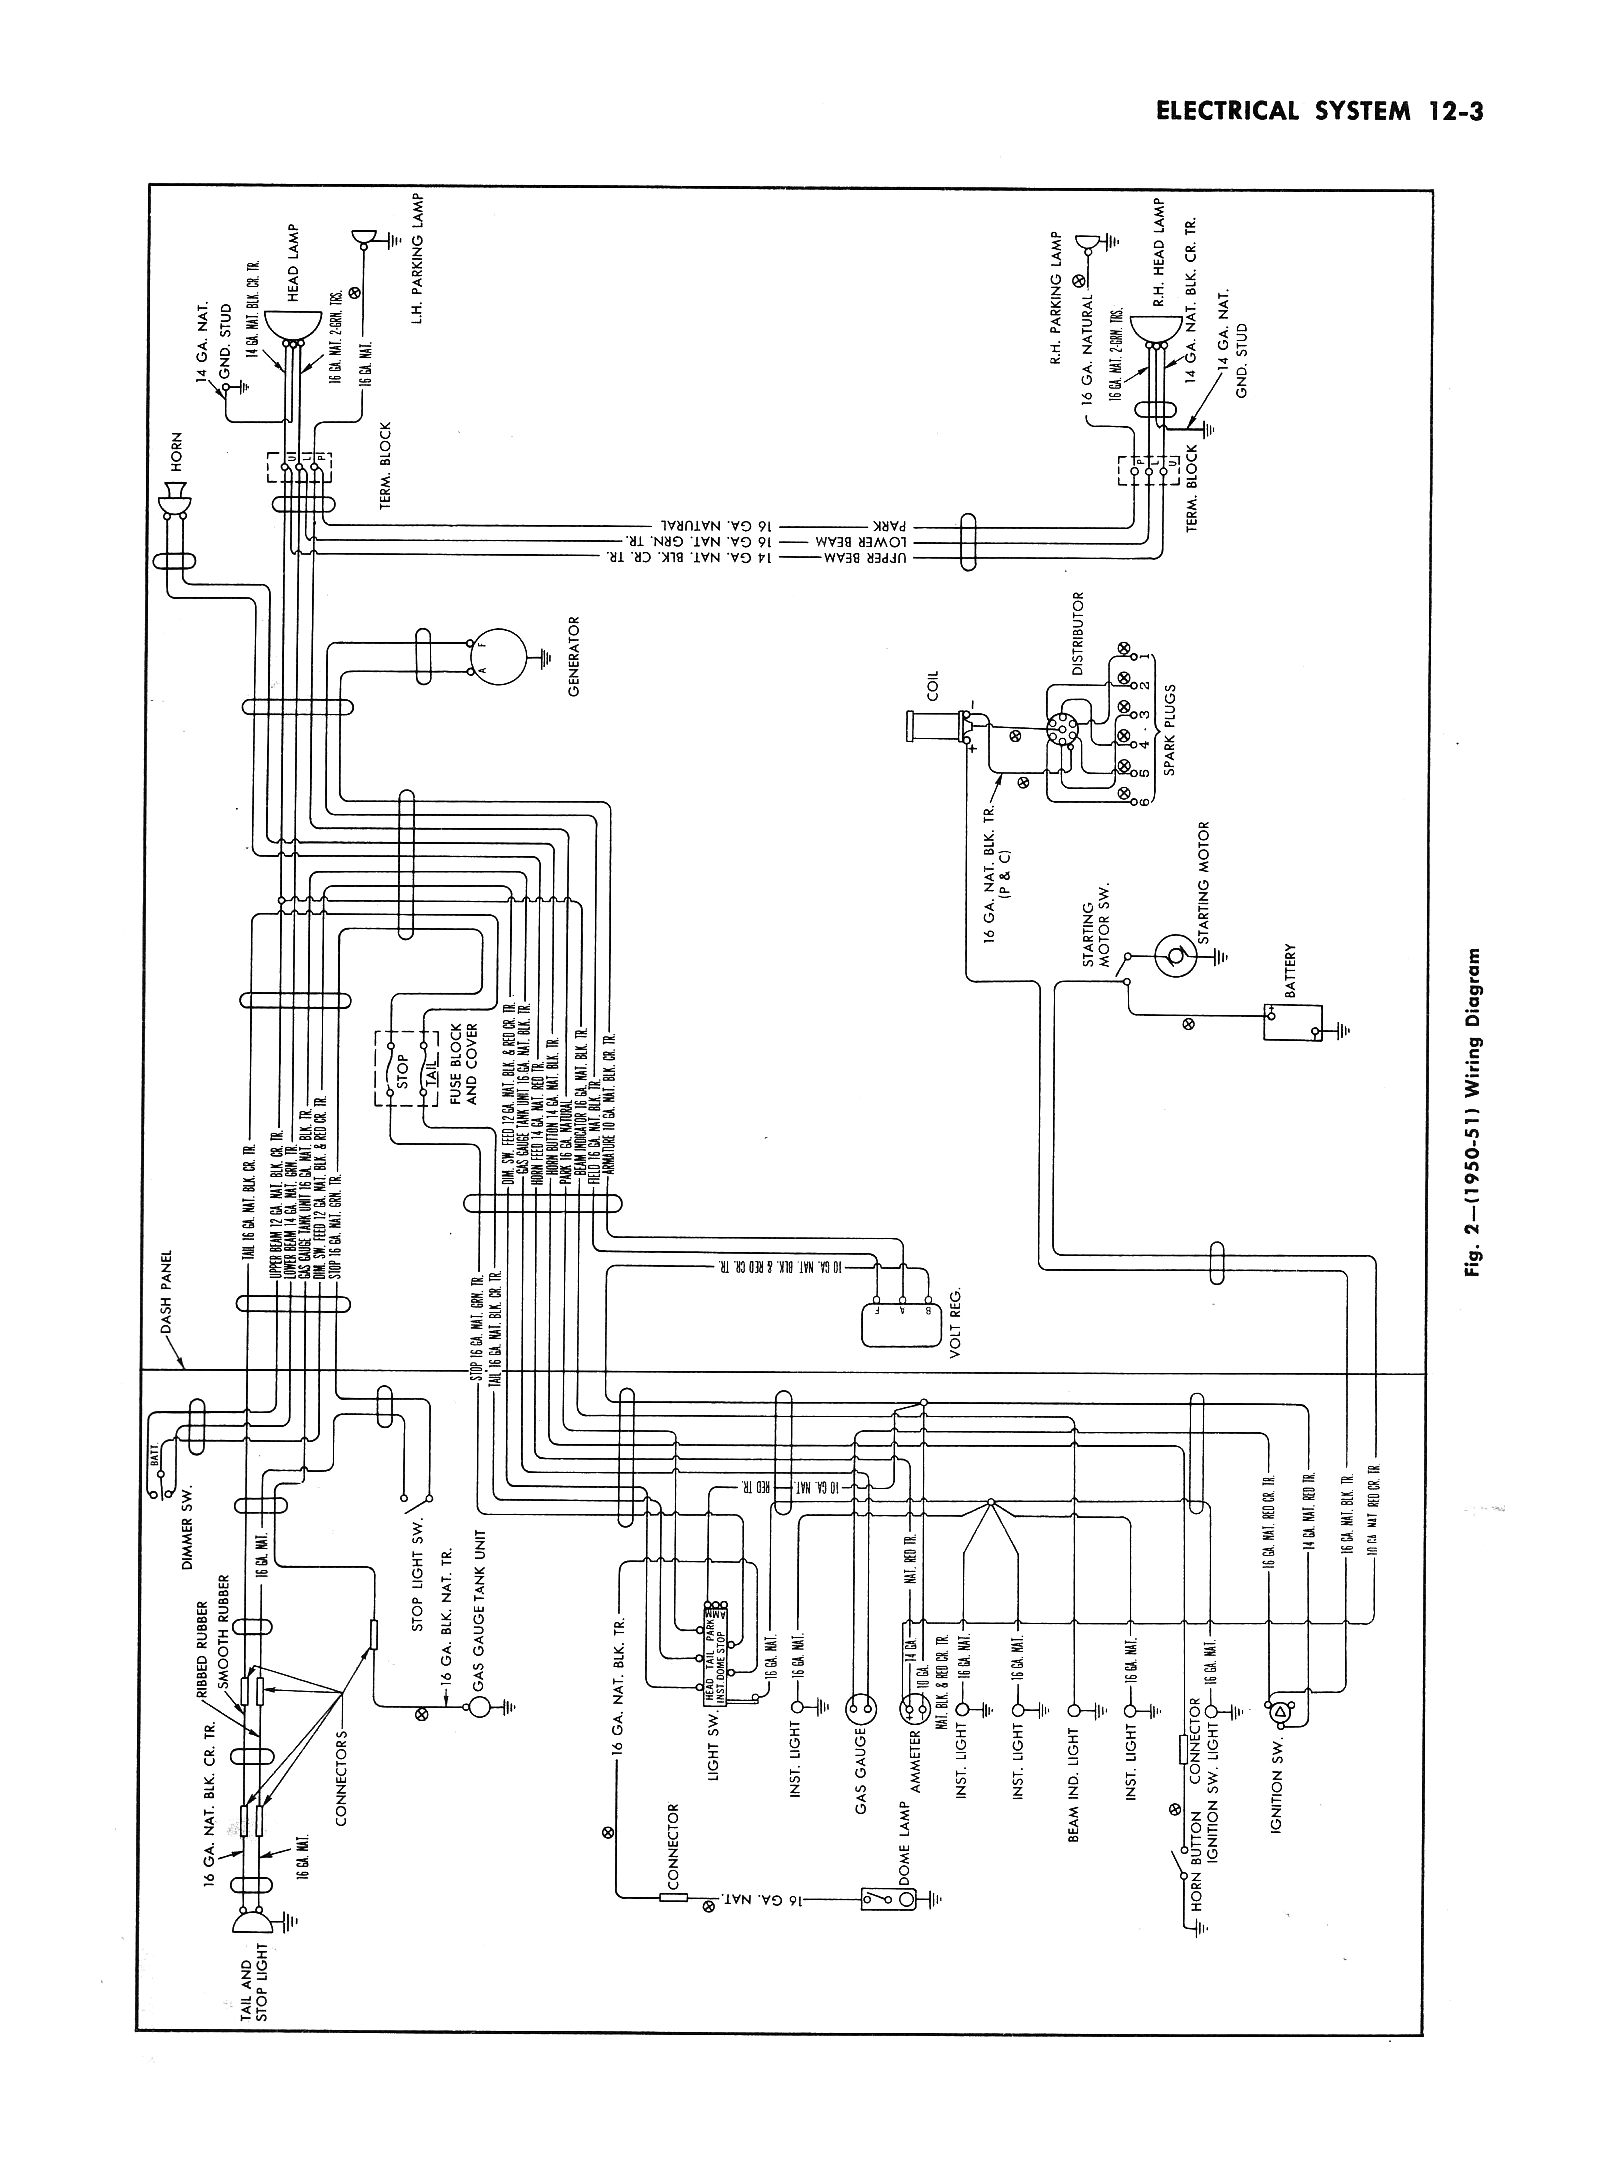 51ctsm1203 1949 chevy pickup wiring diagram on 1949 download wirning diagrams 89 chevy truck ignition switch wiring diagram at virtualis.co